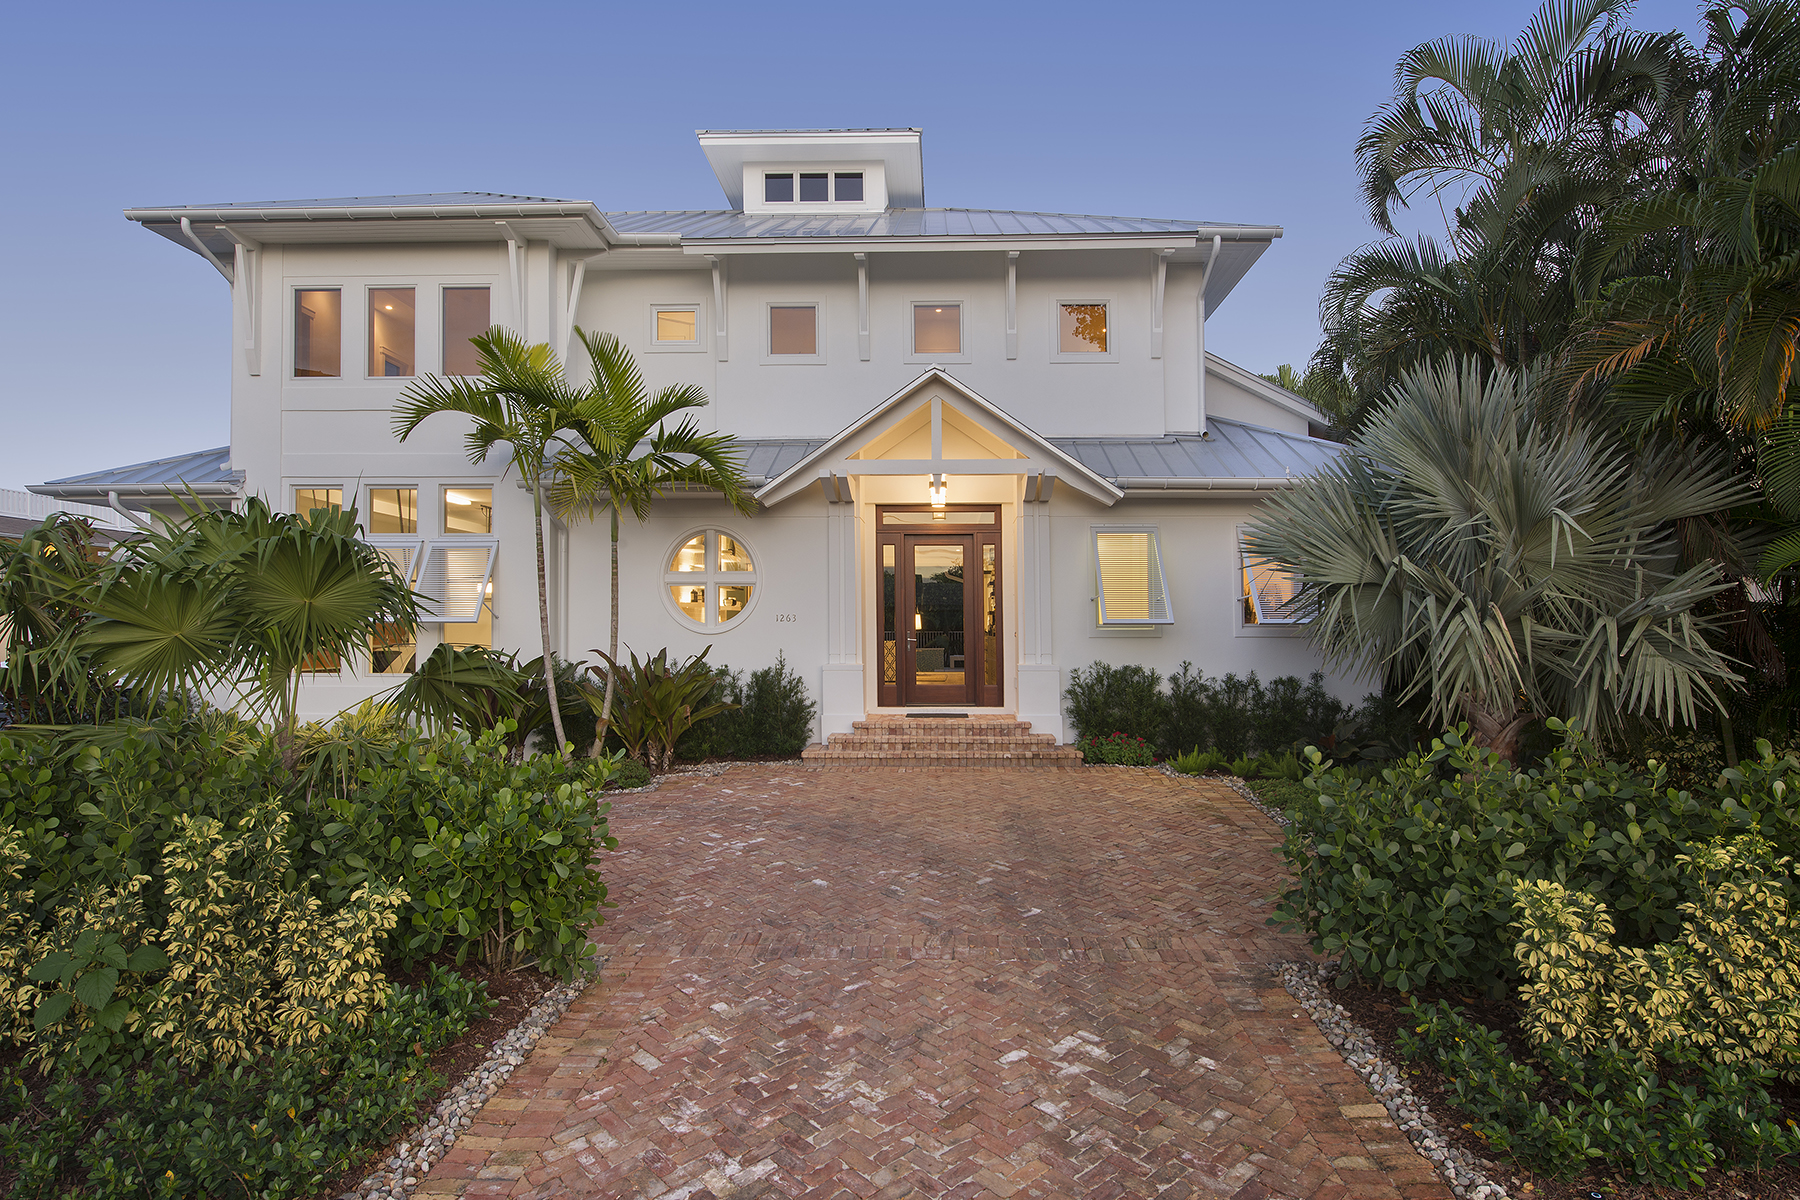 Single Family Home for Sale at OLDE NAPLES 1263 4th St S Naples, Florida, 34102 United States